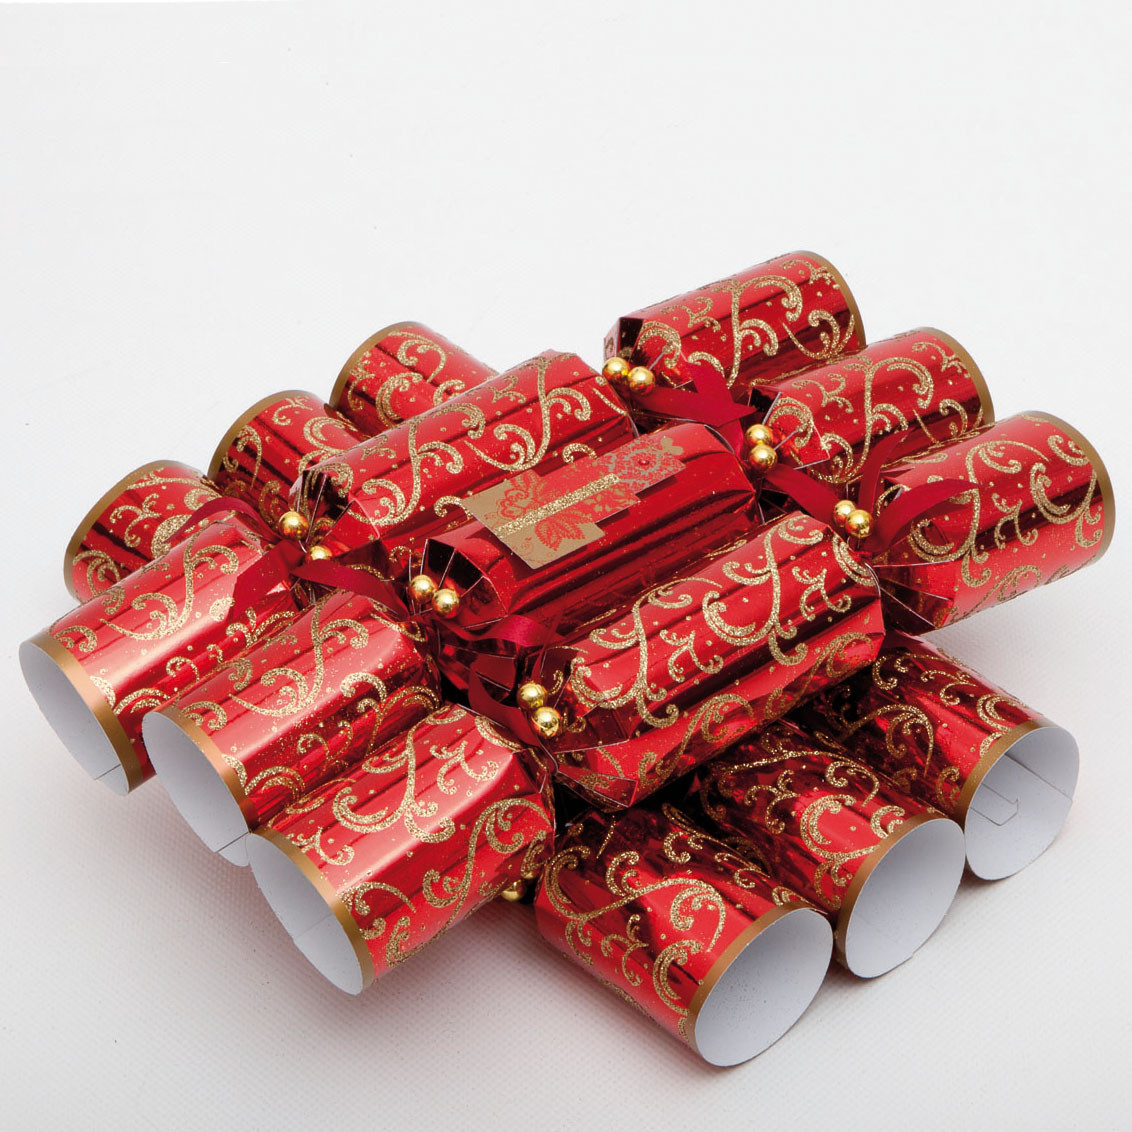 Christmas Crackers Uk  CW004 Red and Gold Christmas Crackers